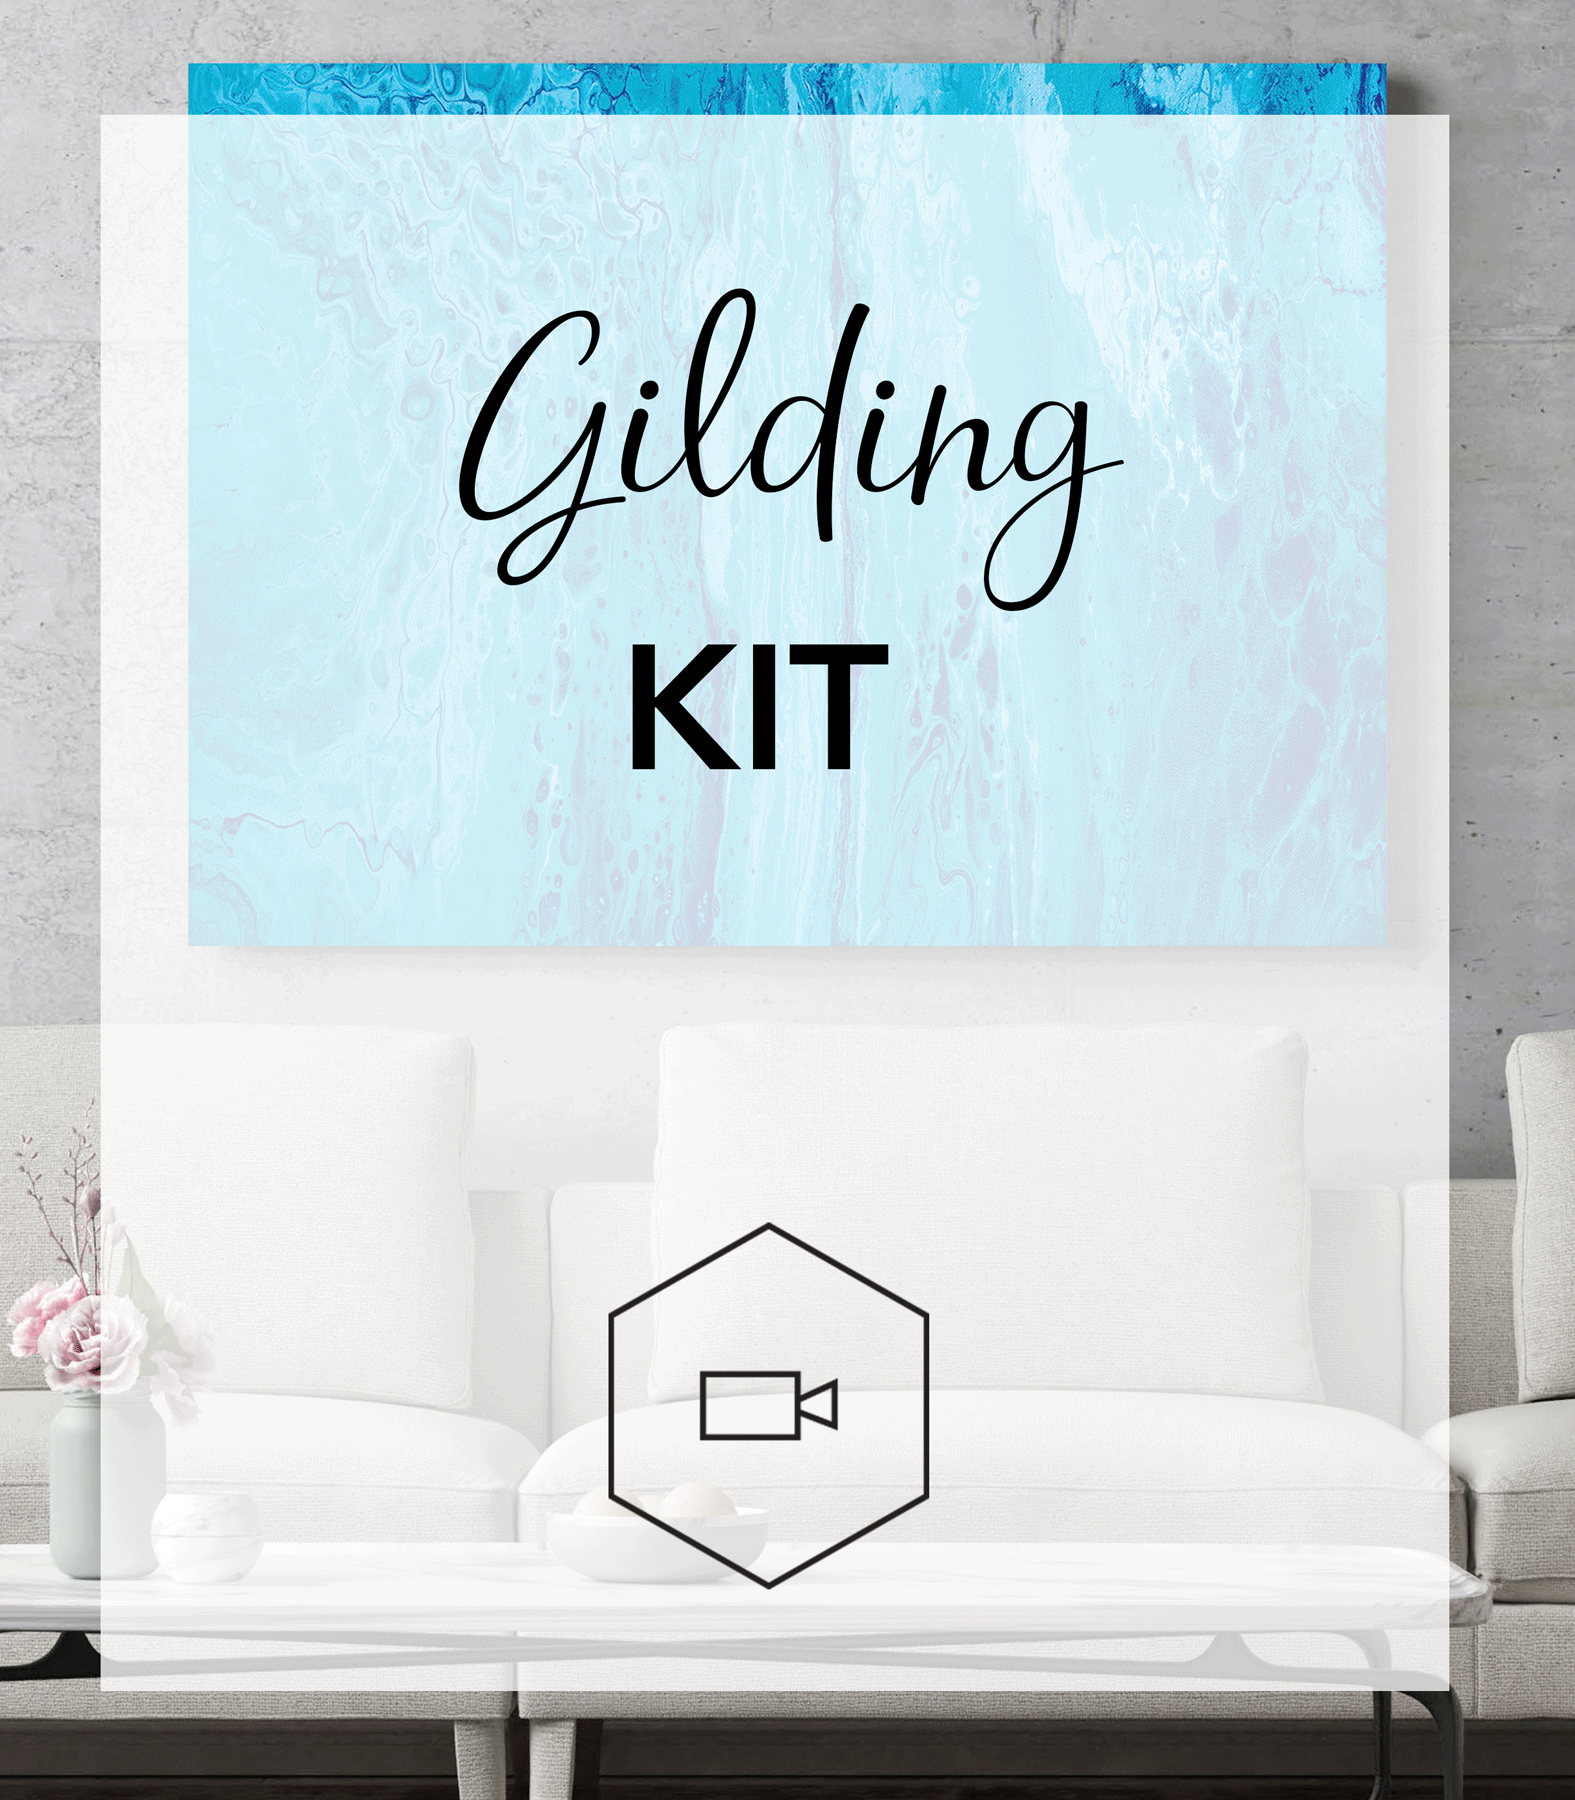 COLOR-POUR-gilding-kit-VIDEO-GRAPHIC